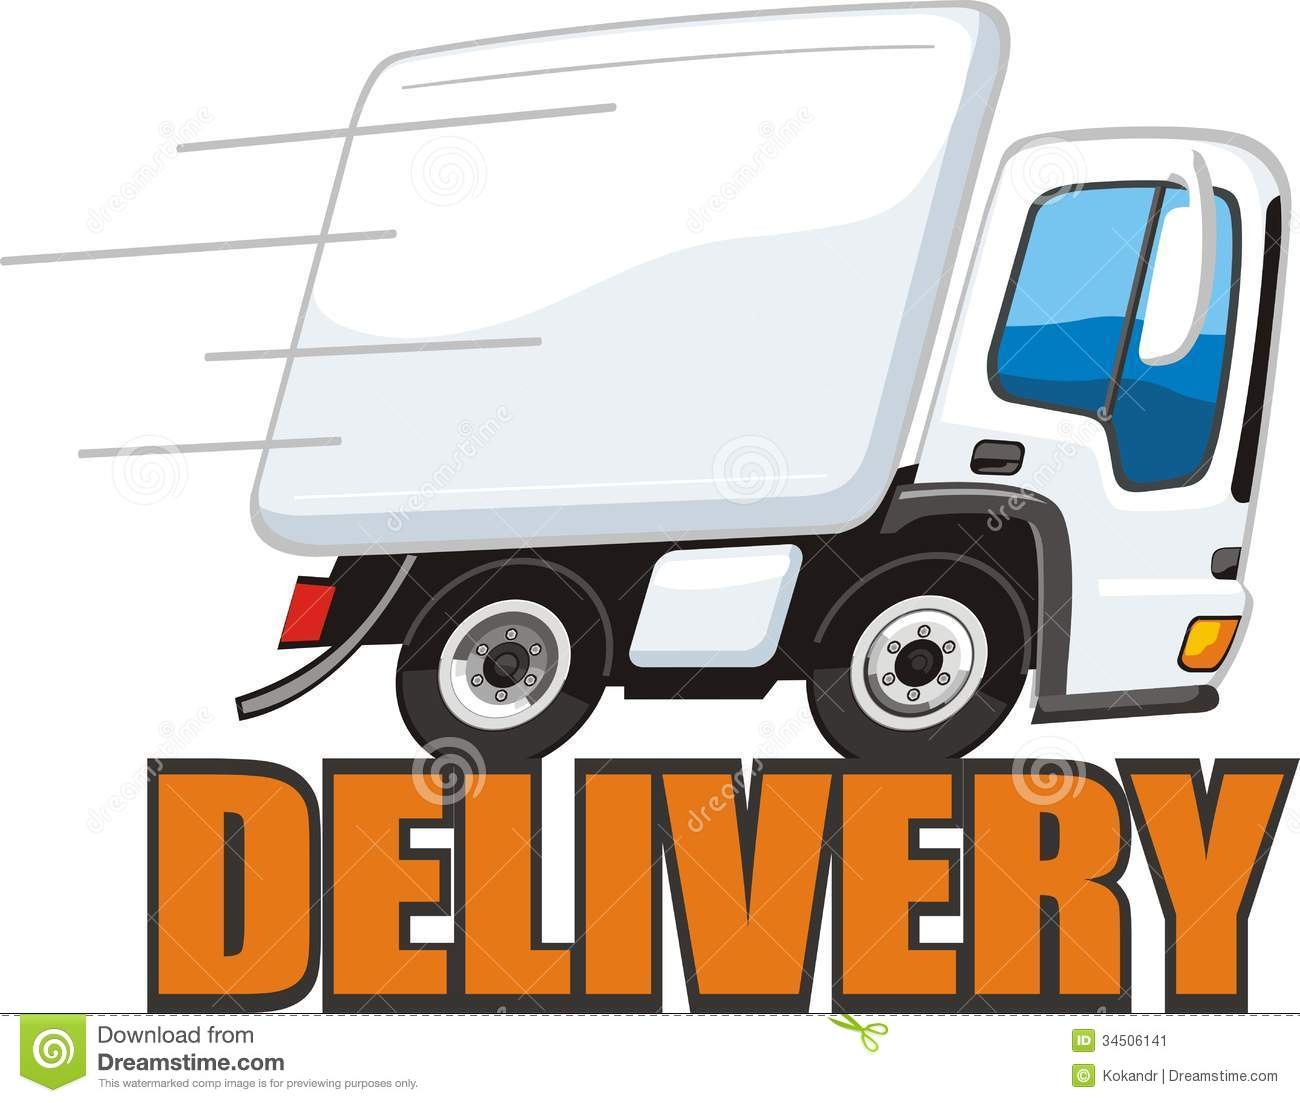 ups truck clipart at getdrawings com free for personal use ups rh getdrawings com delivery truck clipart pictures delivery truck clipart pictures